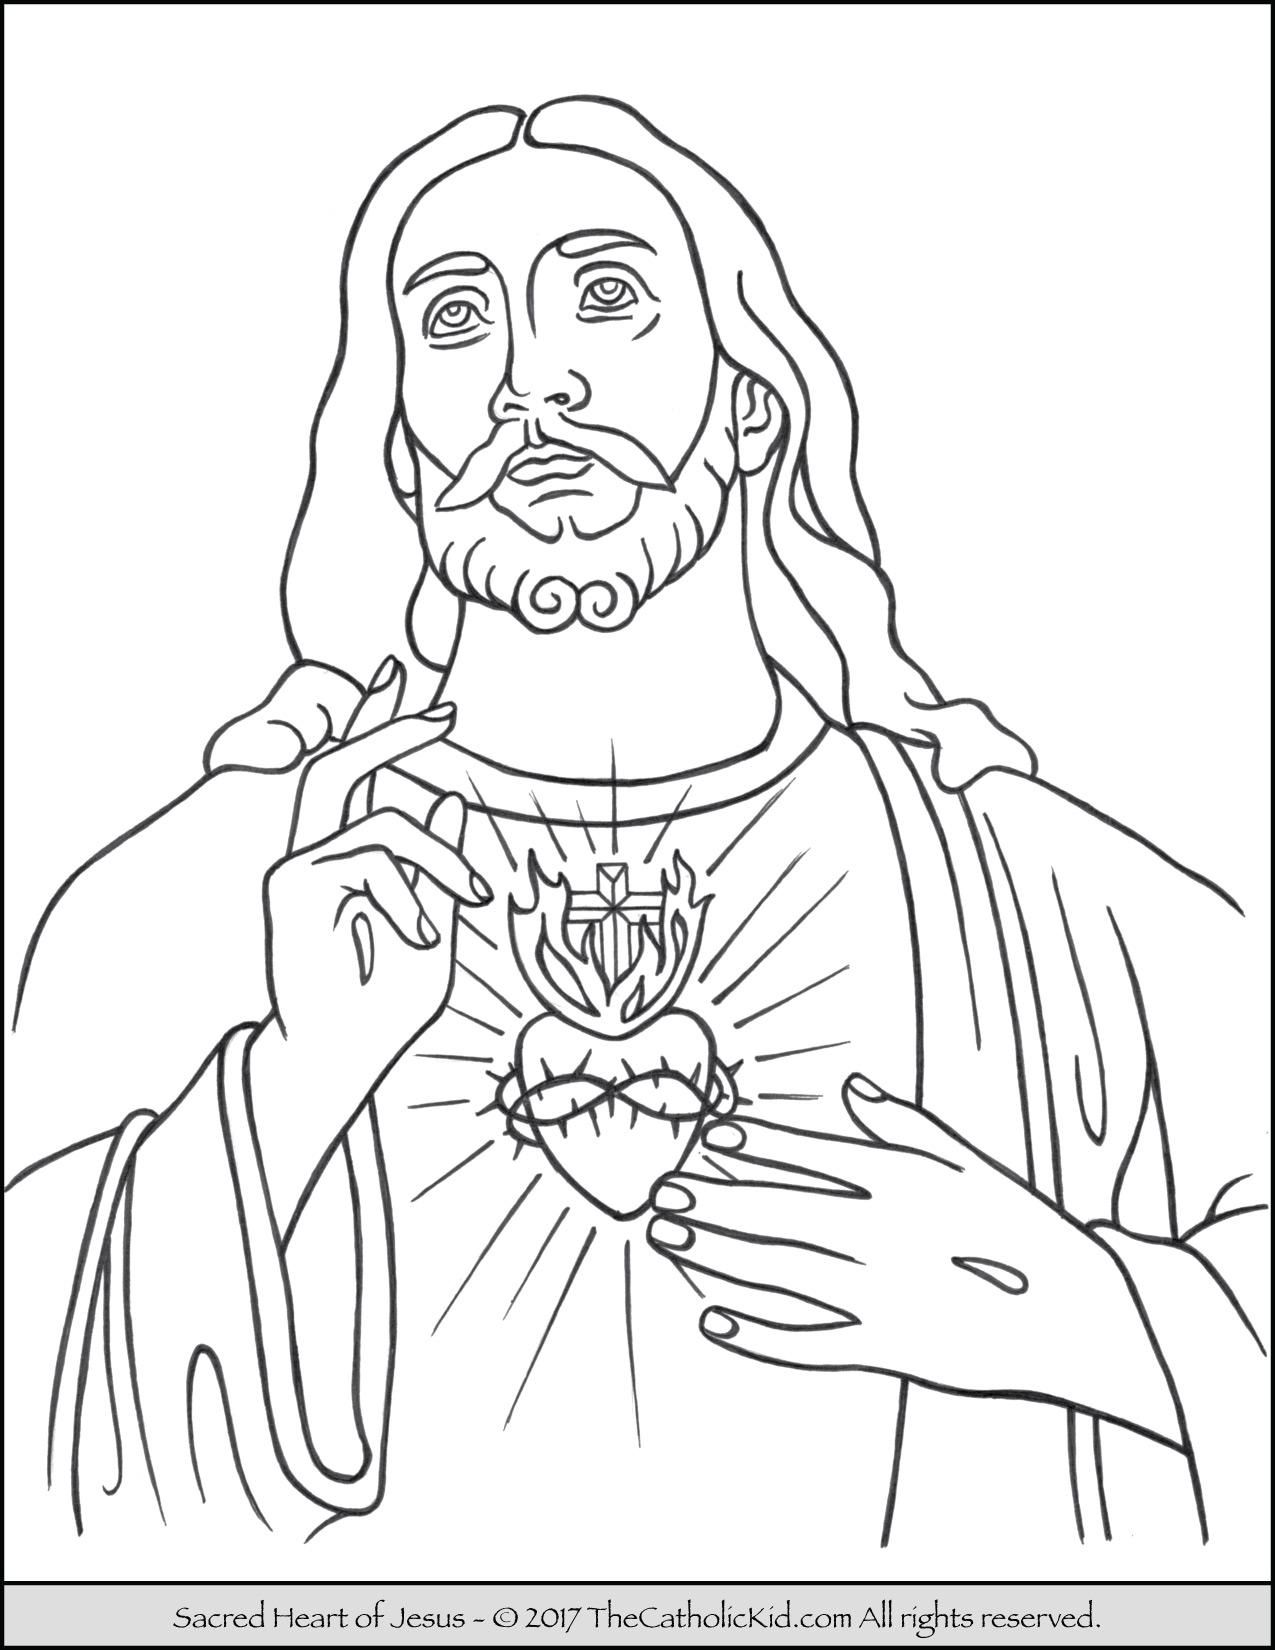 10 Coloring Page Jesus Jesus Coloring Pages Catholic Coloring Bible Coloring Pages